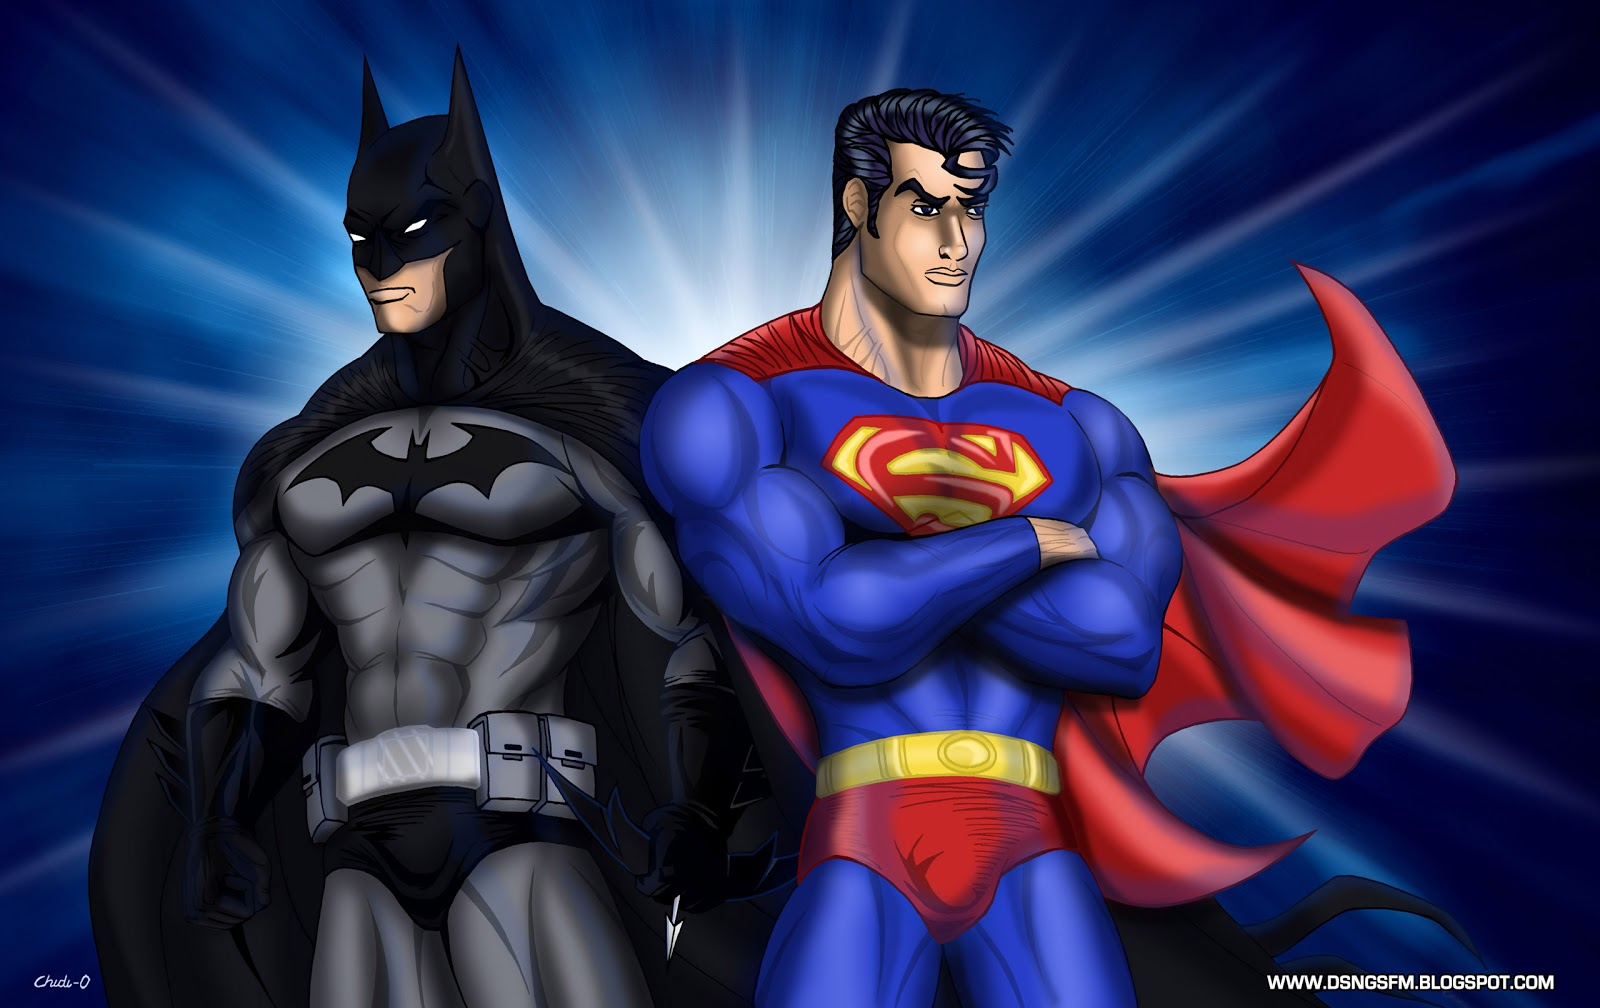 http://3.bp.blogspot.com/-aWvPaEPD8Jg/Tm27jULnOWI/AAAAAAAABRs/8NpT_wco3q8/s1600/Superman+batman+wallpaper+jim+lee+dsng+dc+comics+movie+apocalpse+cartoon+teamup+superhero+new+52.jpg